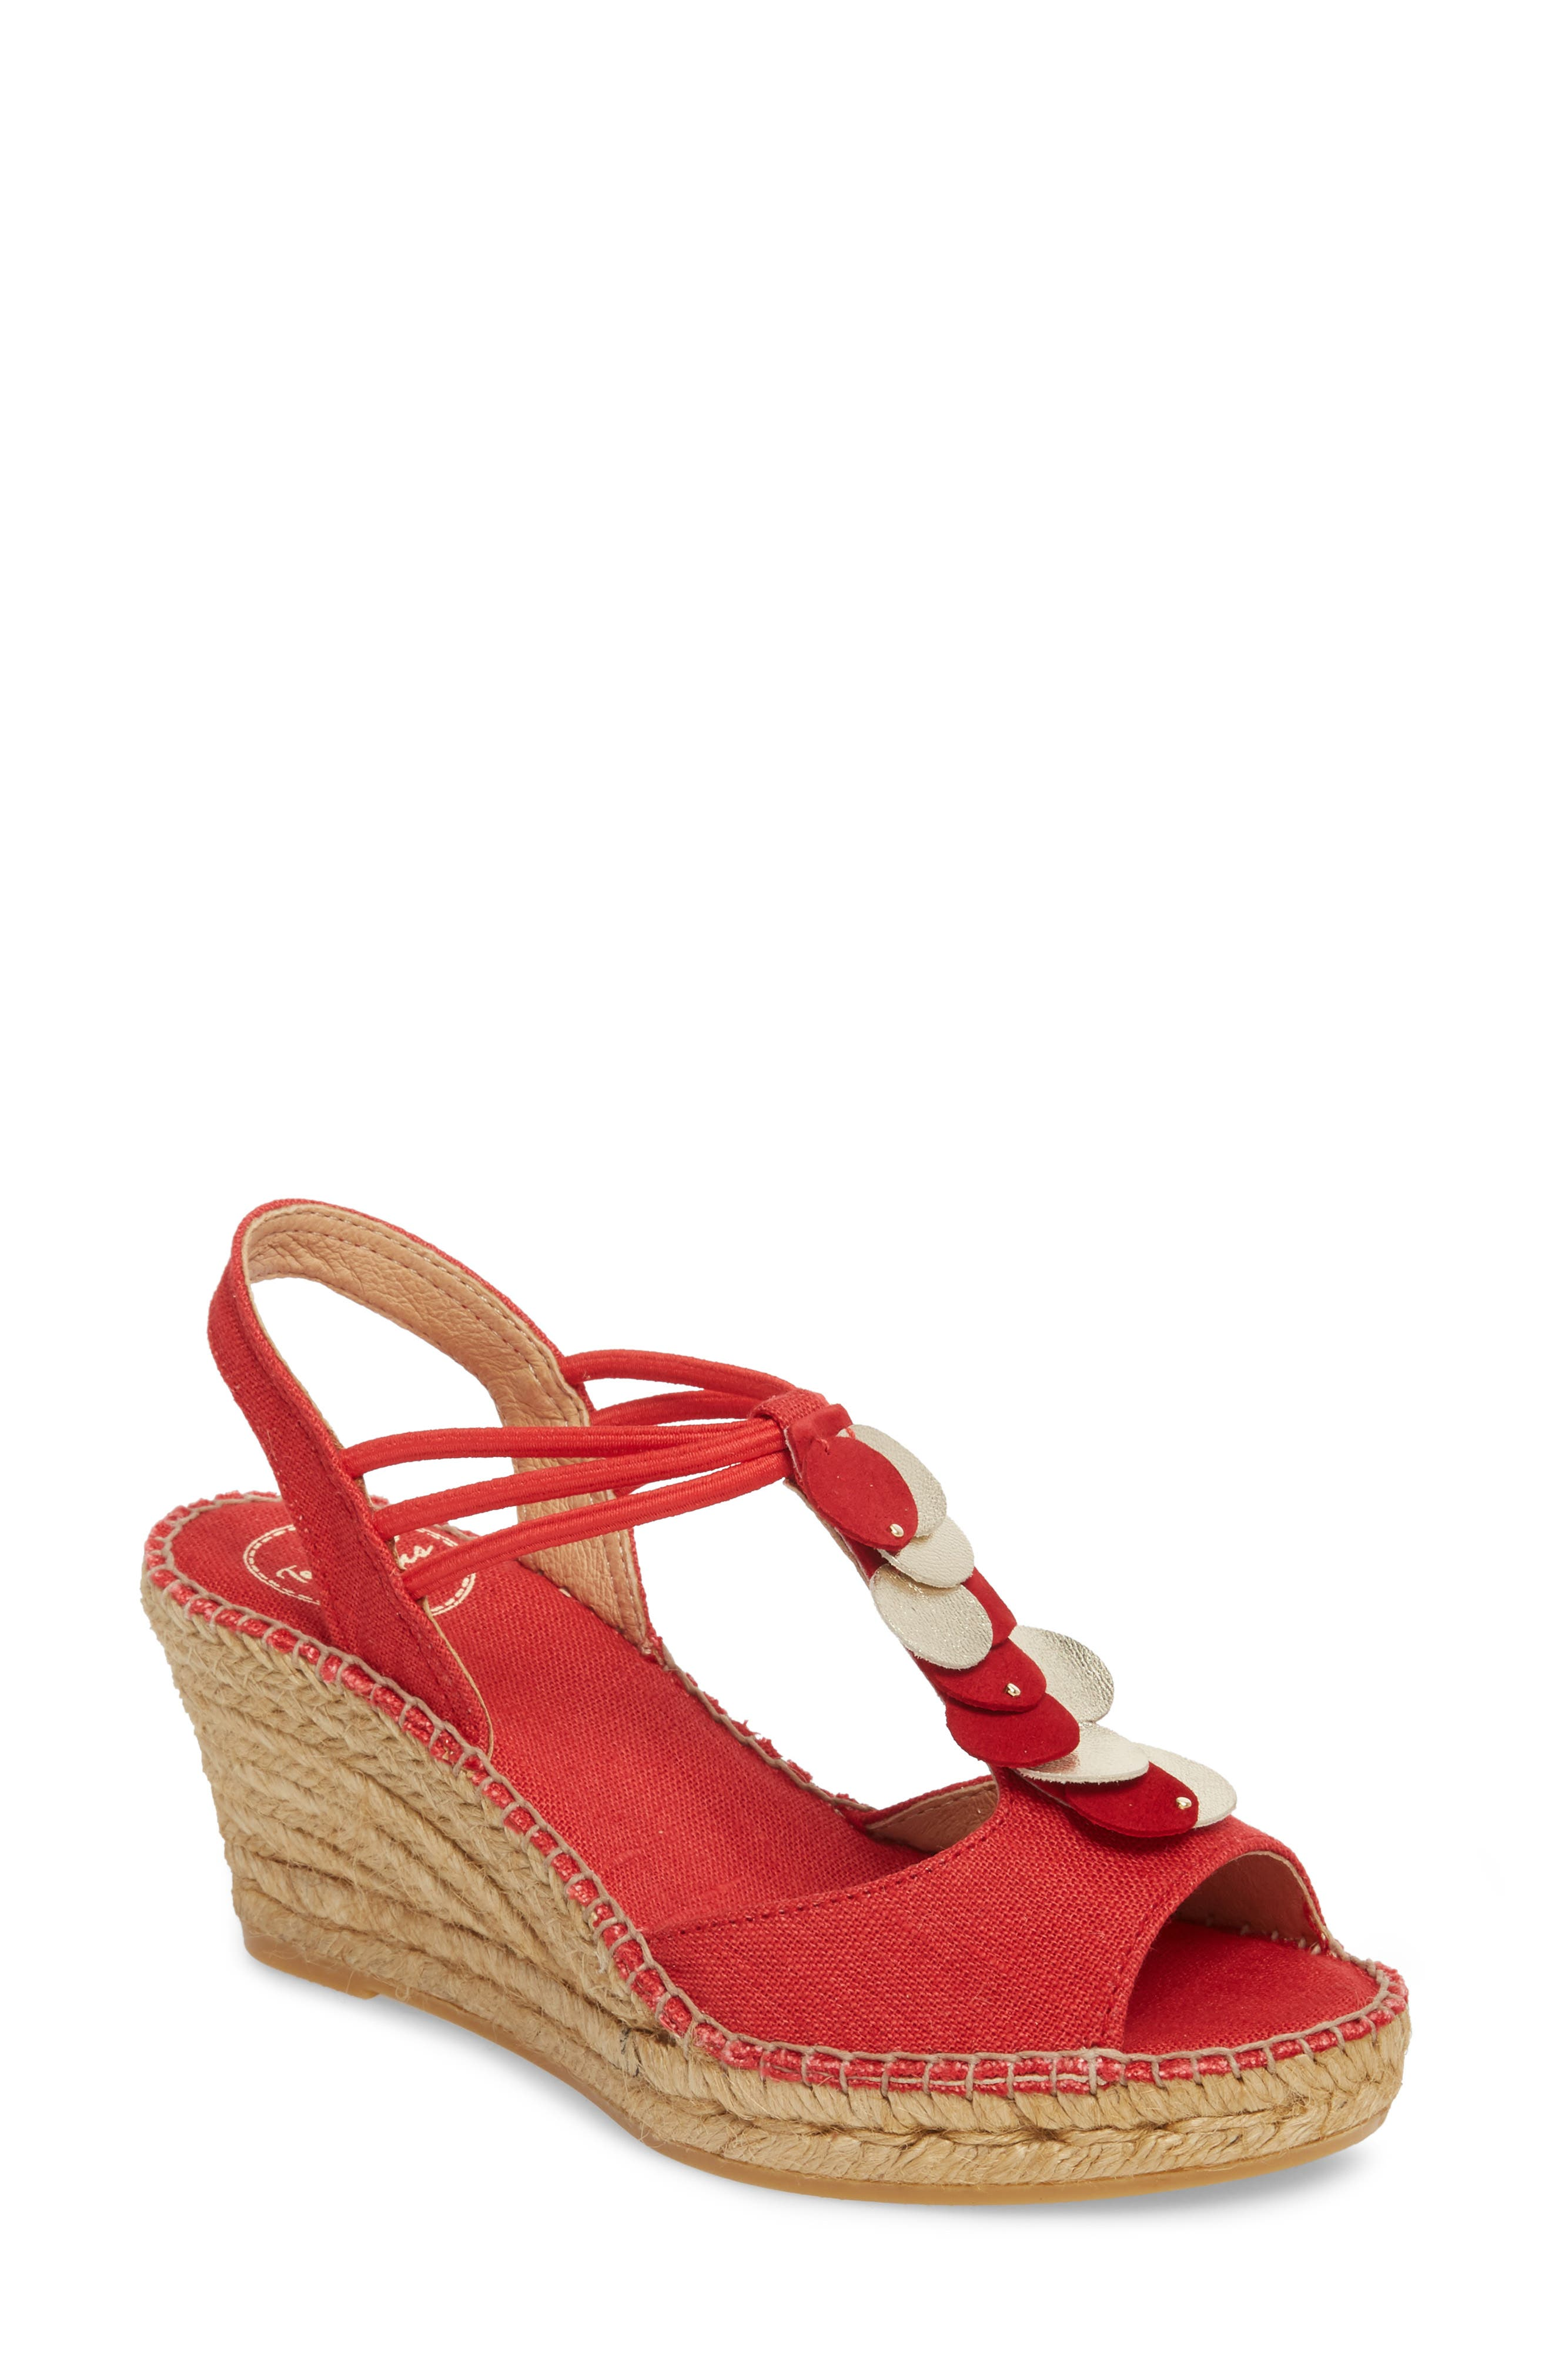 Sitges Espadrille Sandal,                         Main,                         color, Red Fabric